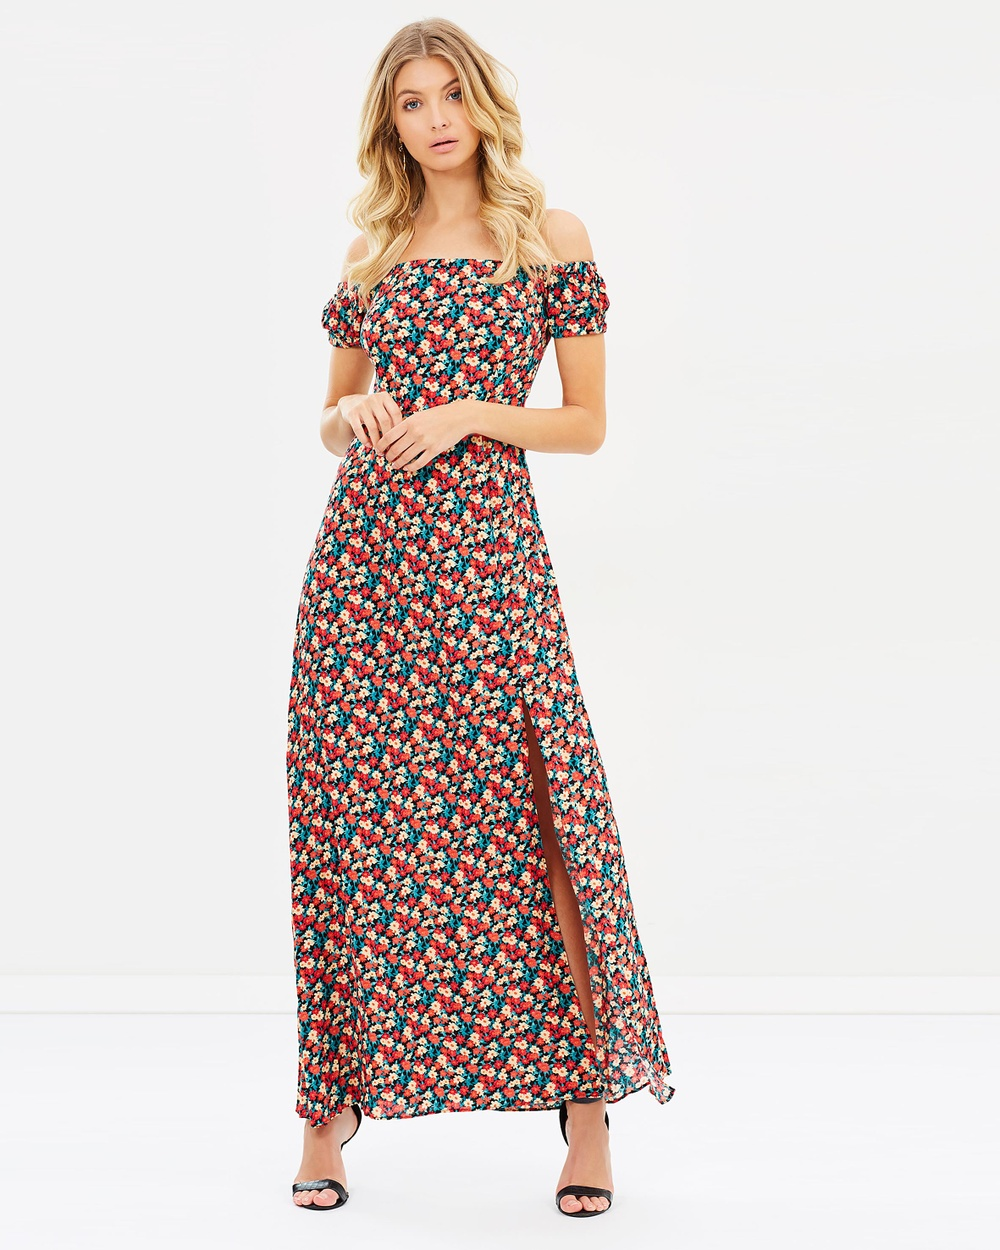 Atmos & Here ICONIC EXCLUSIVE Azariah Off Shoulder Maxi Dress Printed Dresses Black Base Daisy ICONIC EXCLUSIVE Azariah Off-Shoulder Maxi Dress